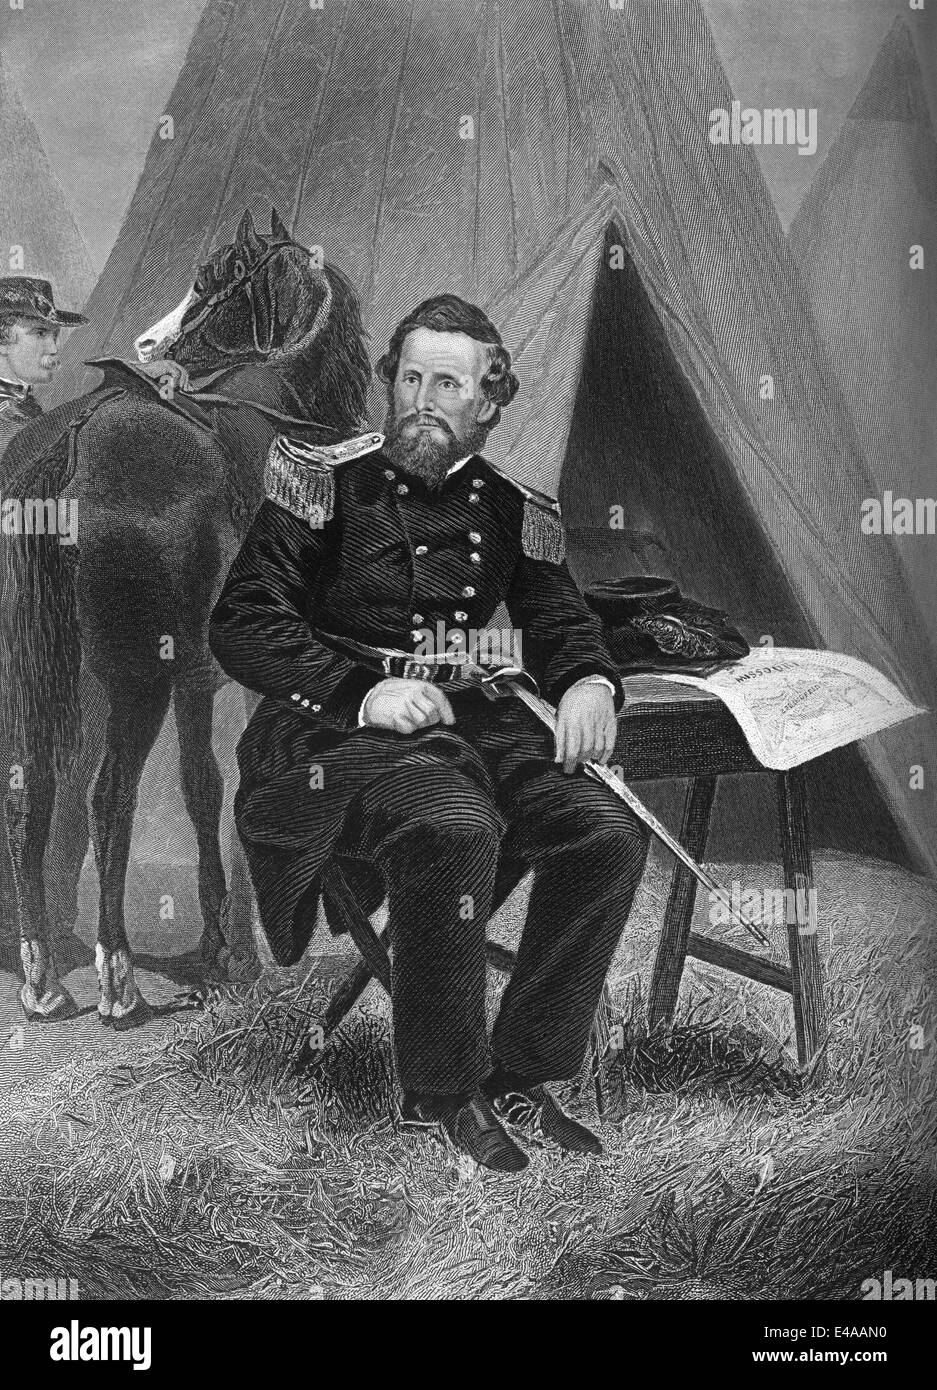 Nathaniel Lyon, 1818 - 1861, Union general in the American Civil War, - Stock Image